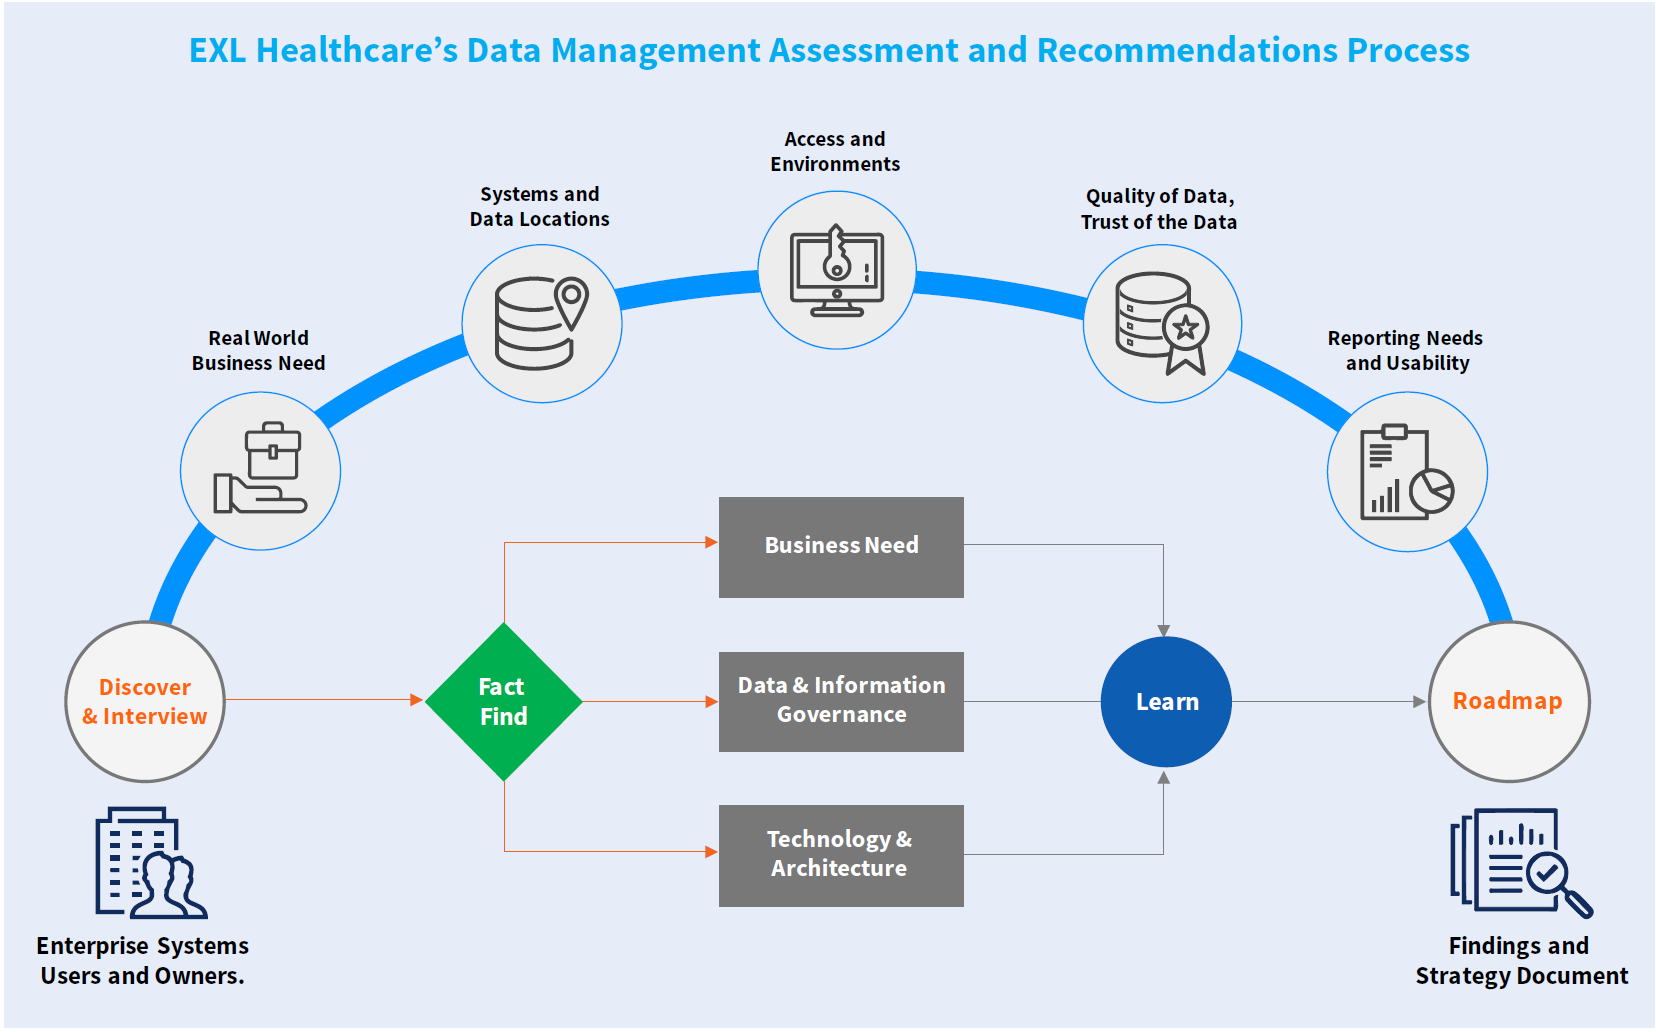 EXL Health's Data Management Assessment and Recommendations Process